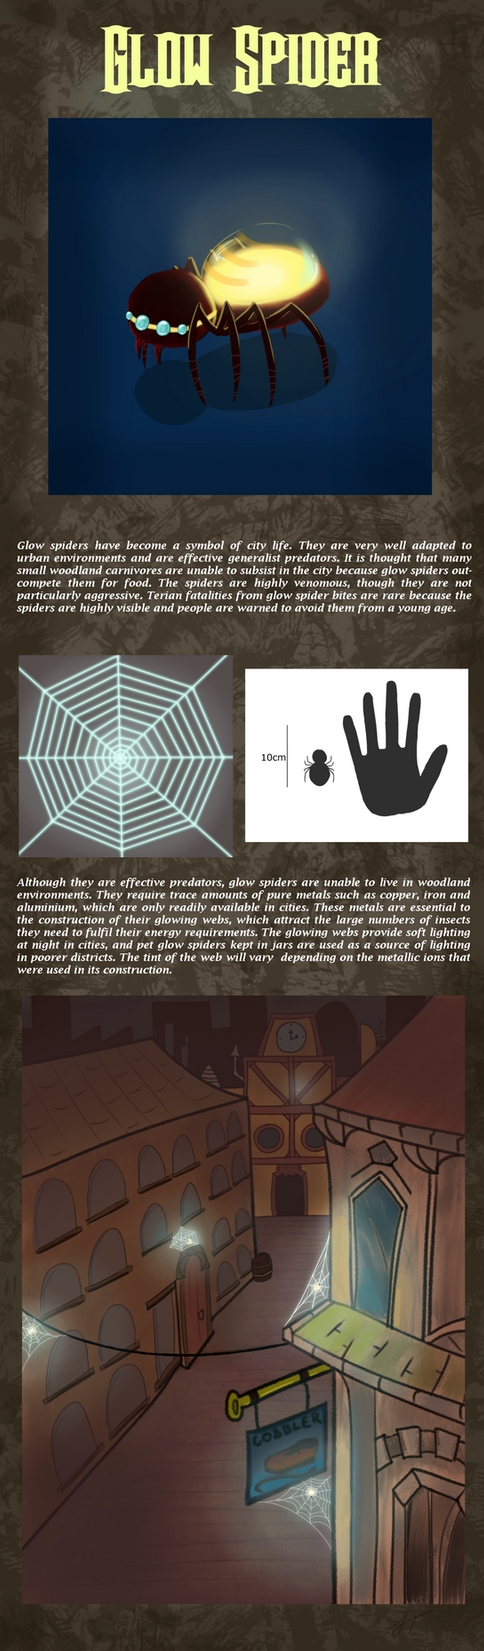 Glow Spider - contest entry by ScienceWithSteve